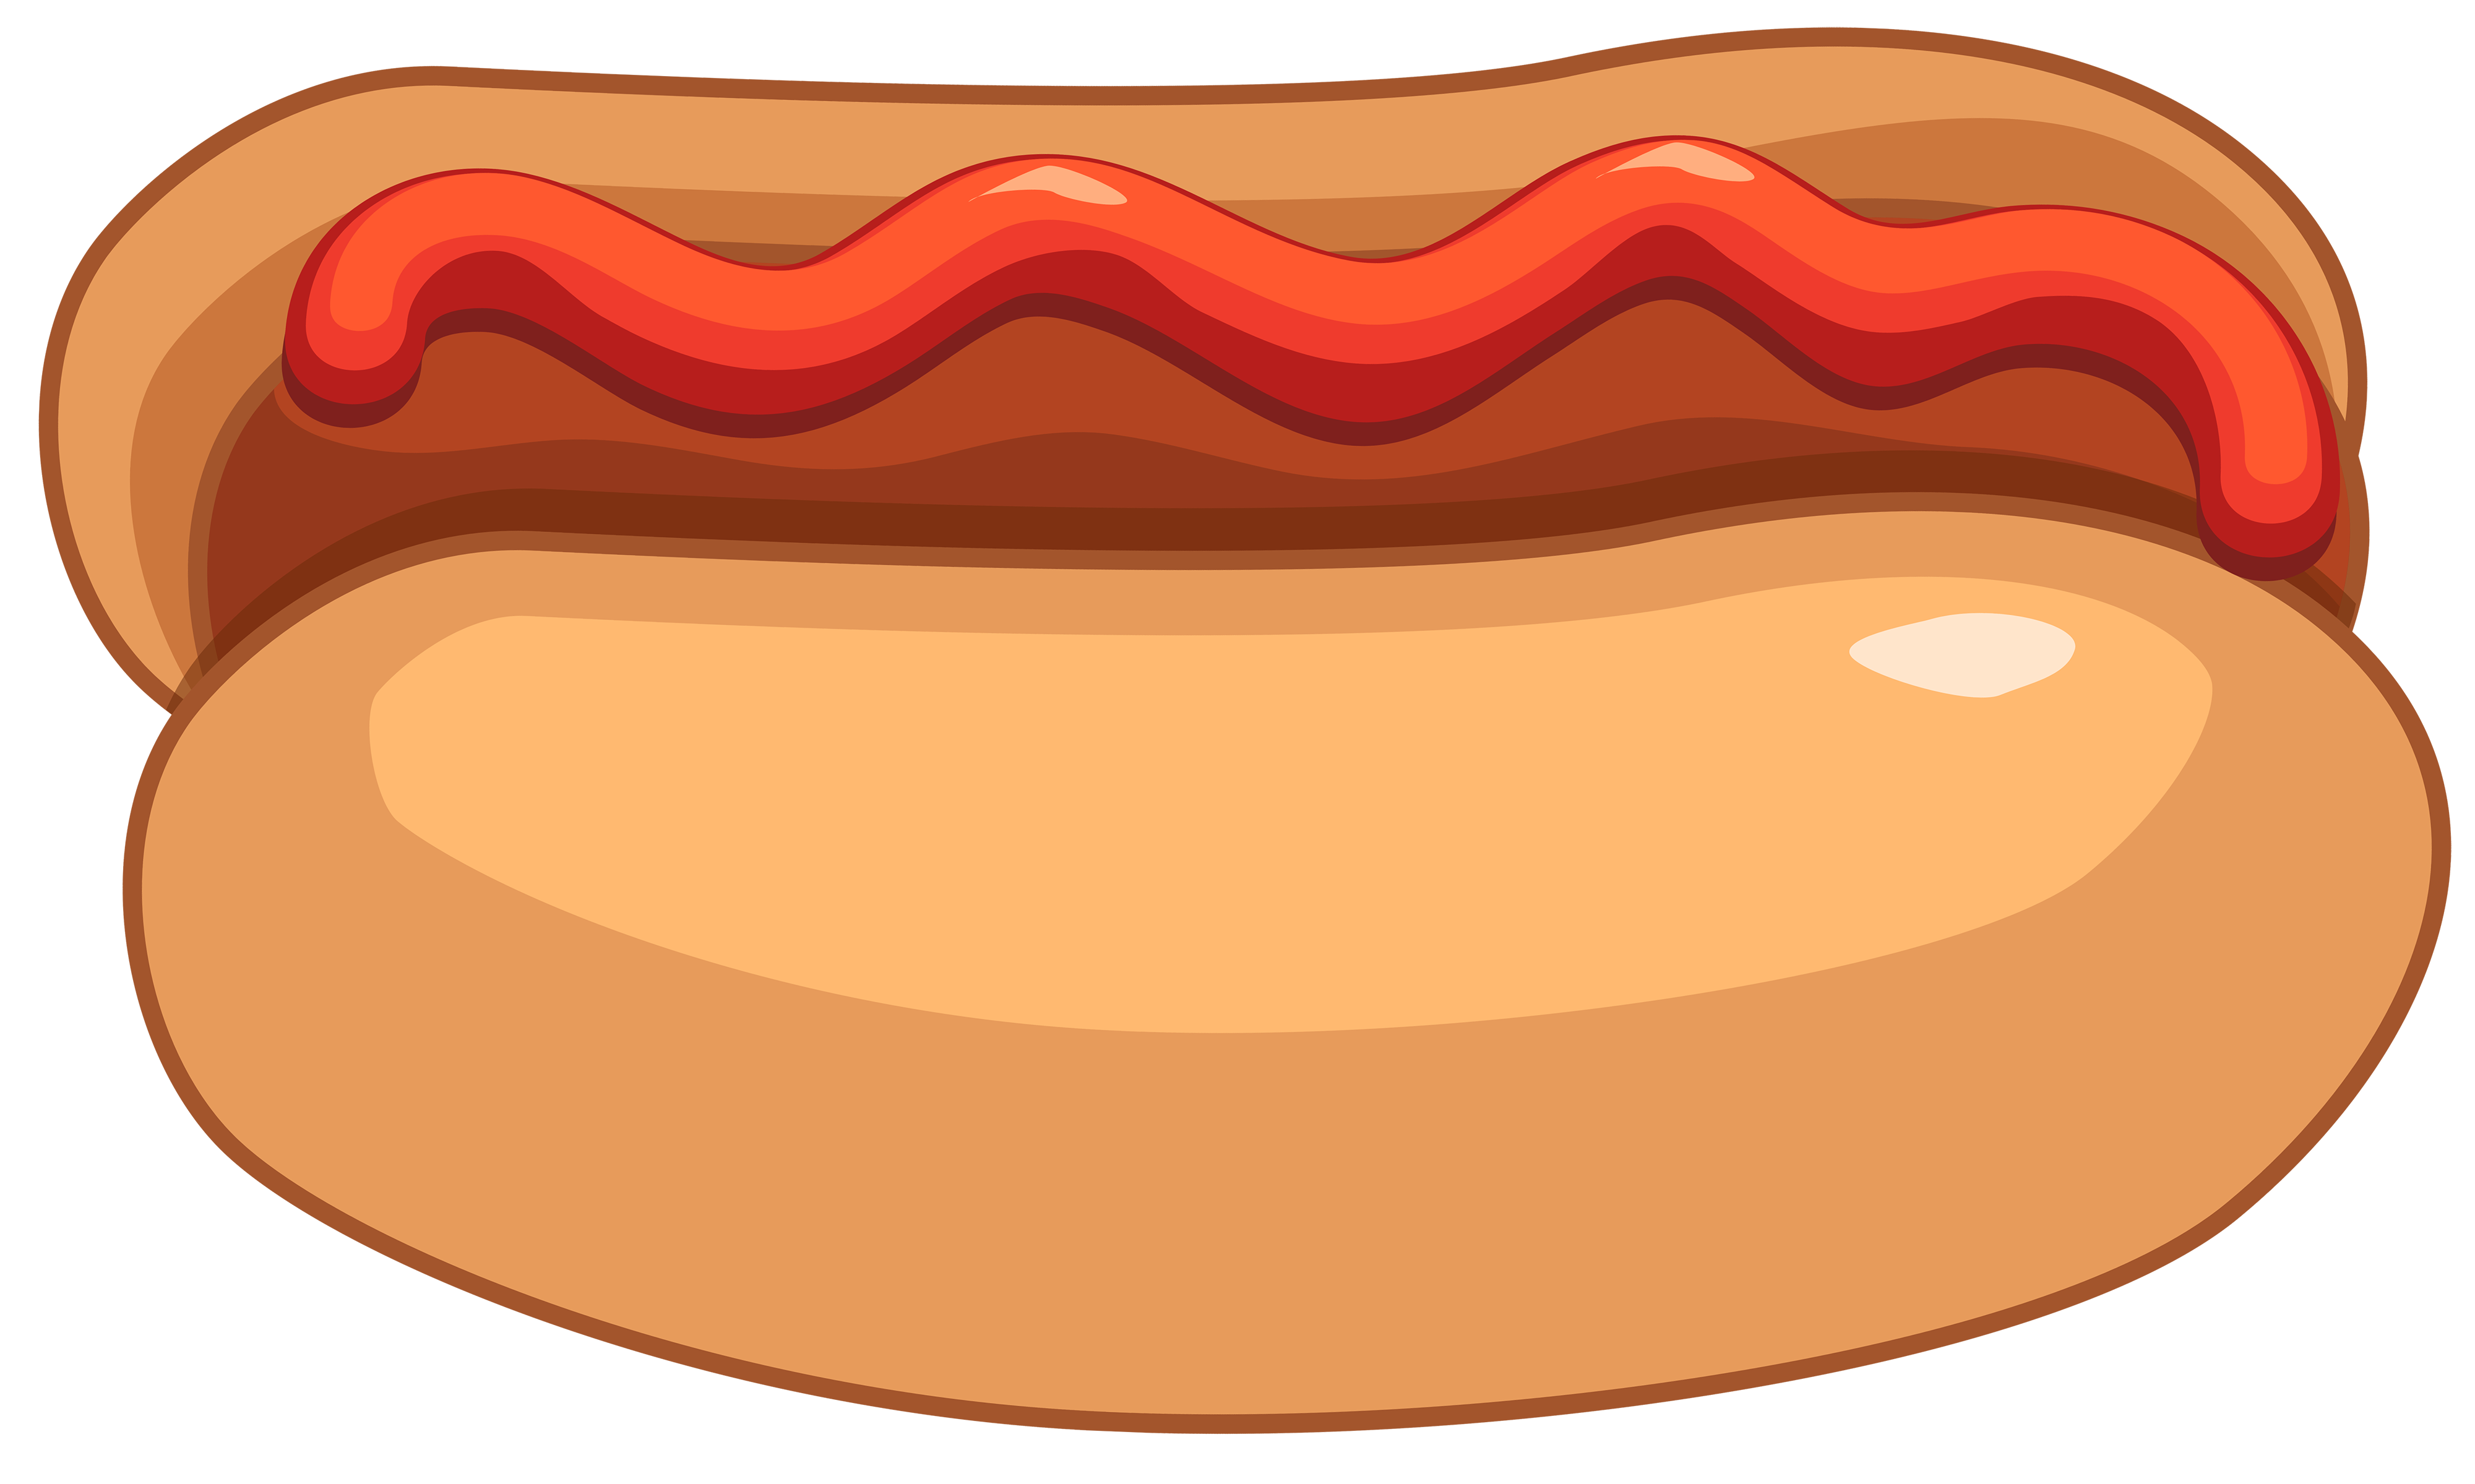 Hot Dog And Ketchup Clipart .-Hot dog and ketchup clipart .-6